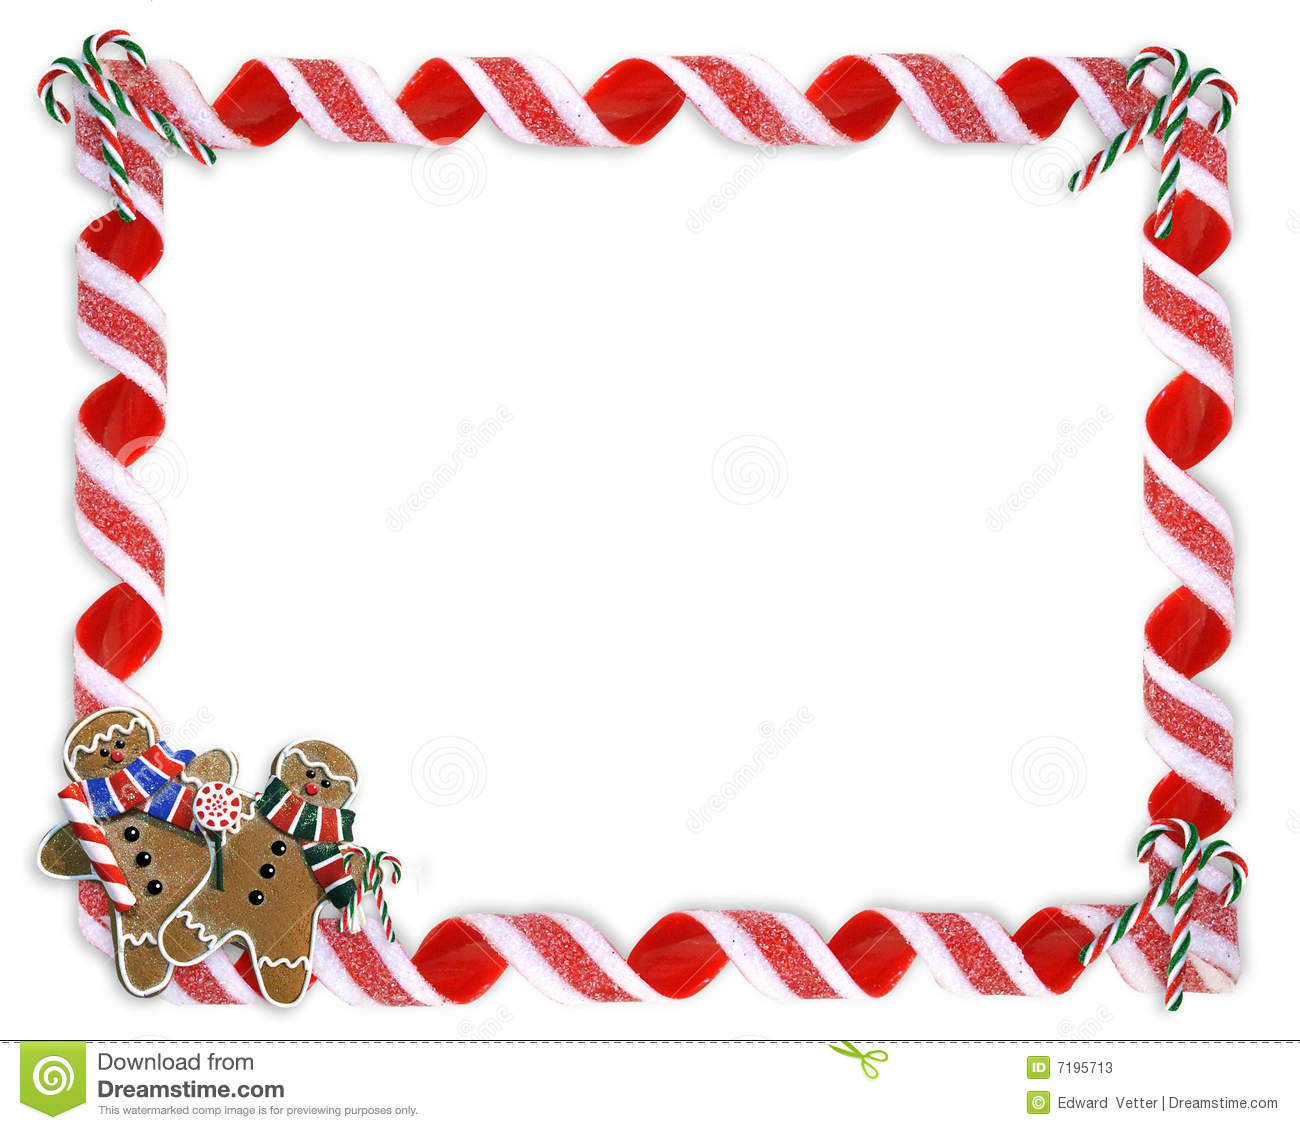 Christmas Letter Border Template - Christmas Border Cookies and Candy Stock Illustration Illustration